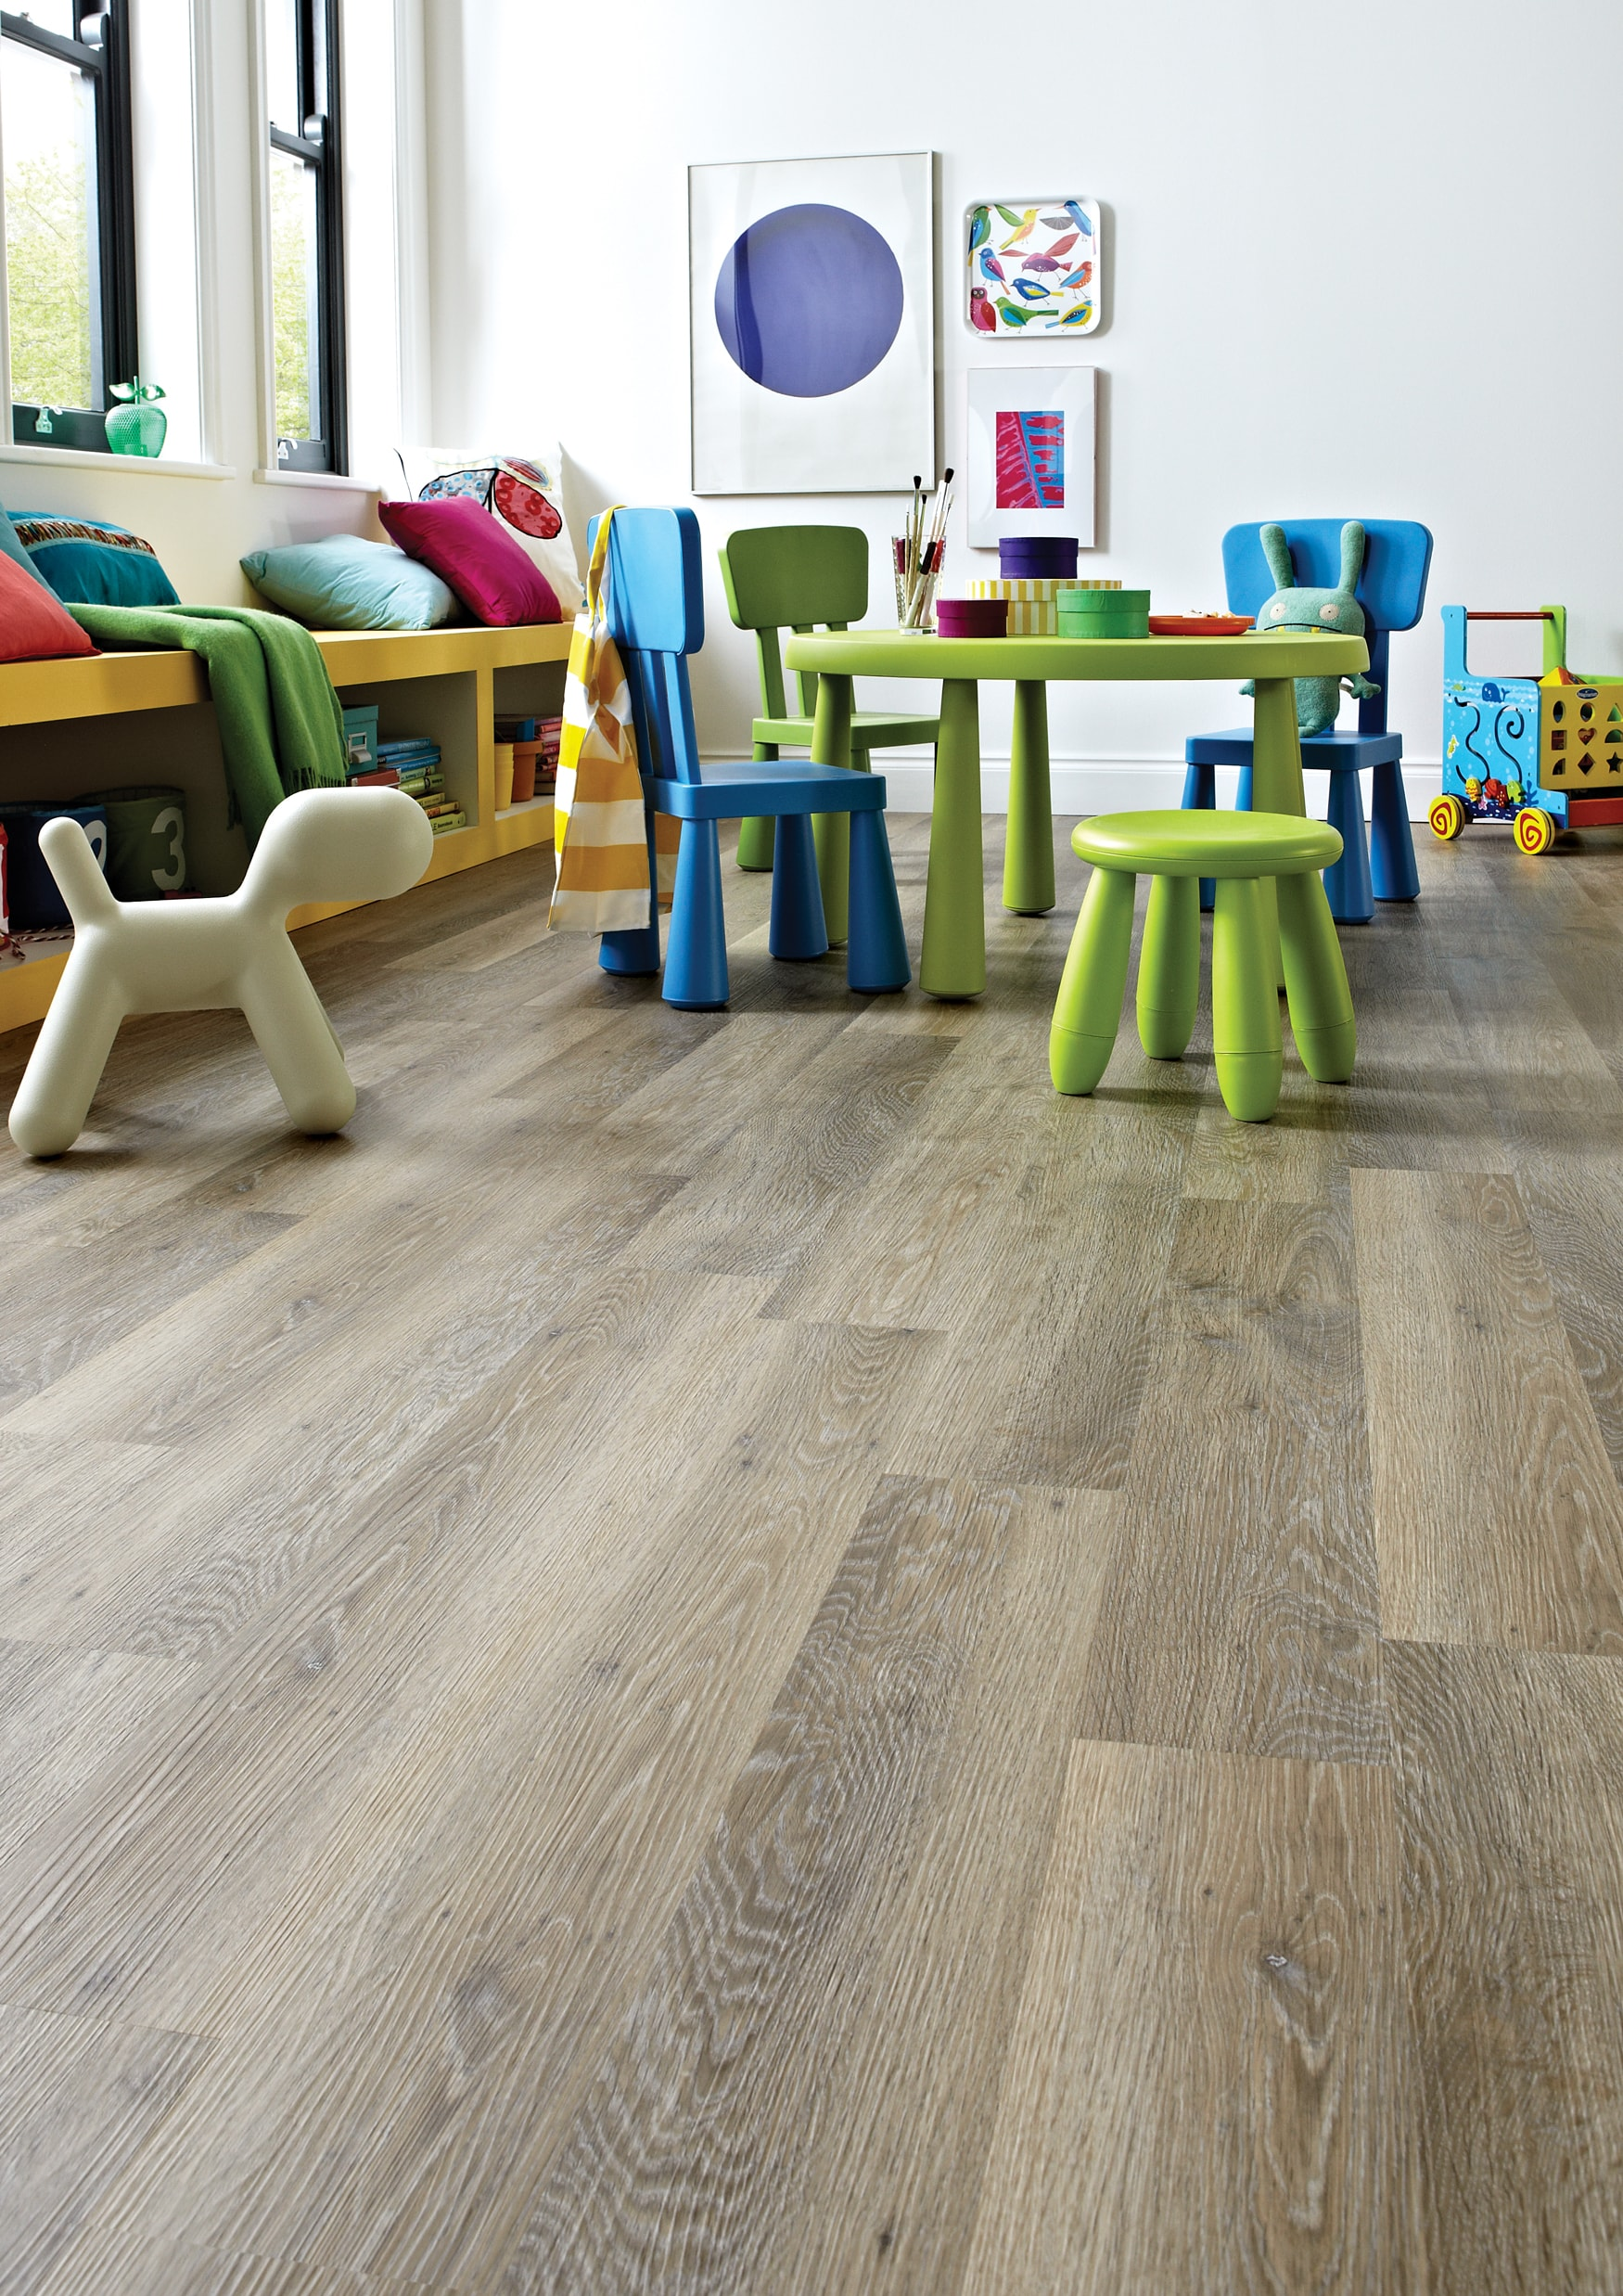 Karndean Knight Tile Lime Washed Oak available from Flooring 4 You Ltd, Cheshire